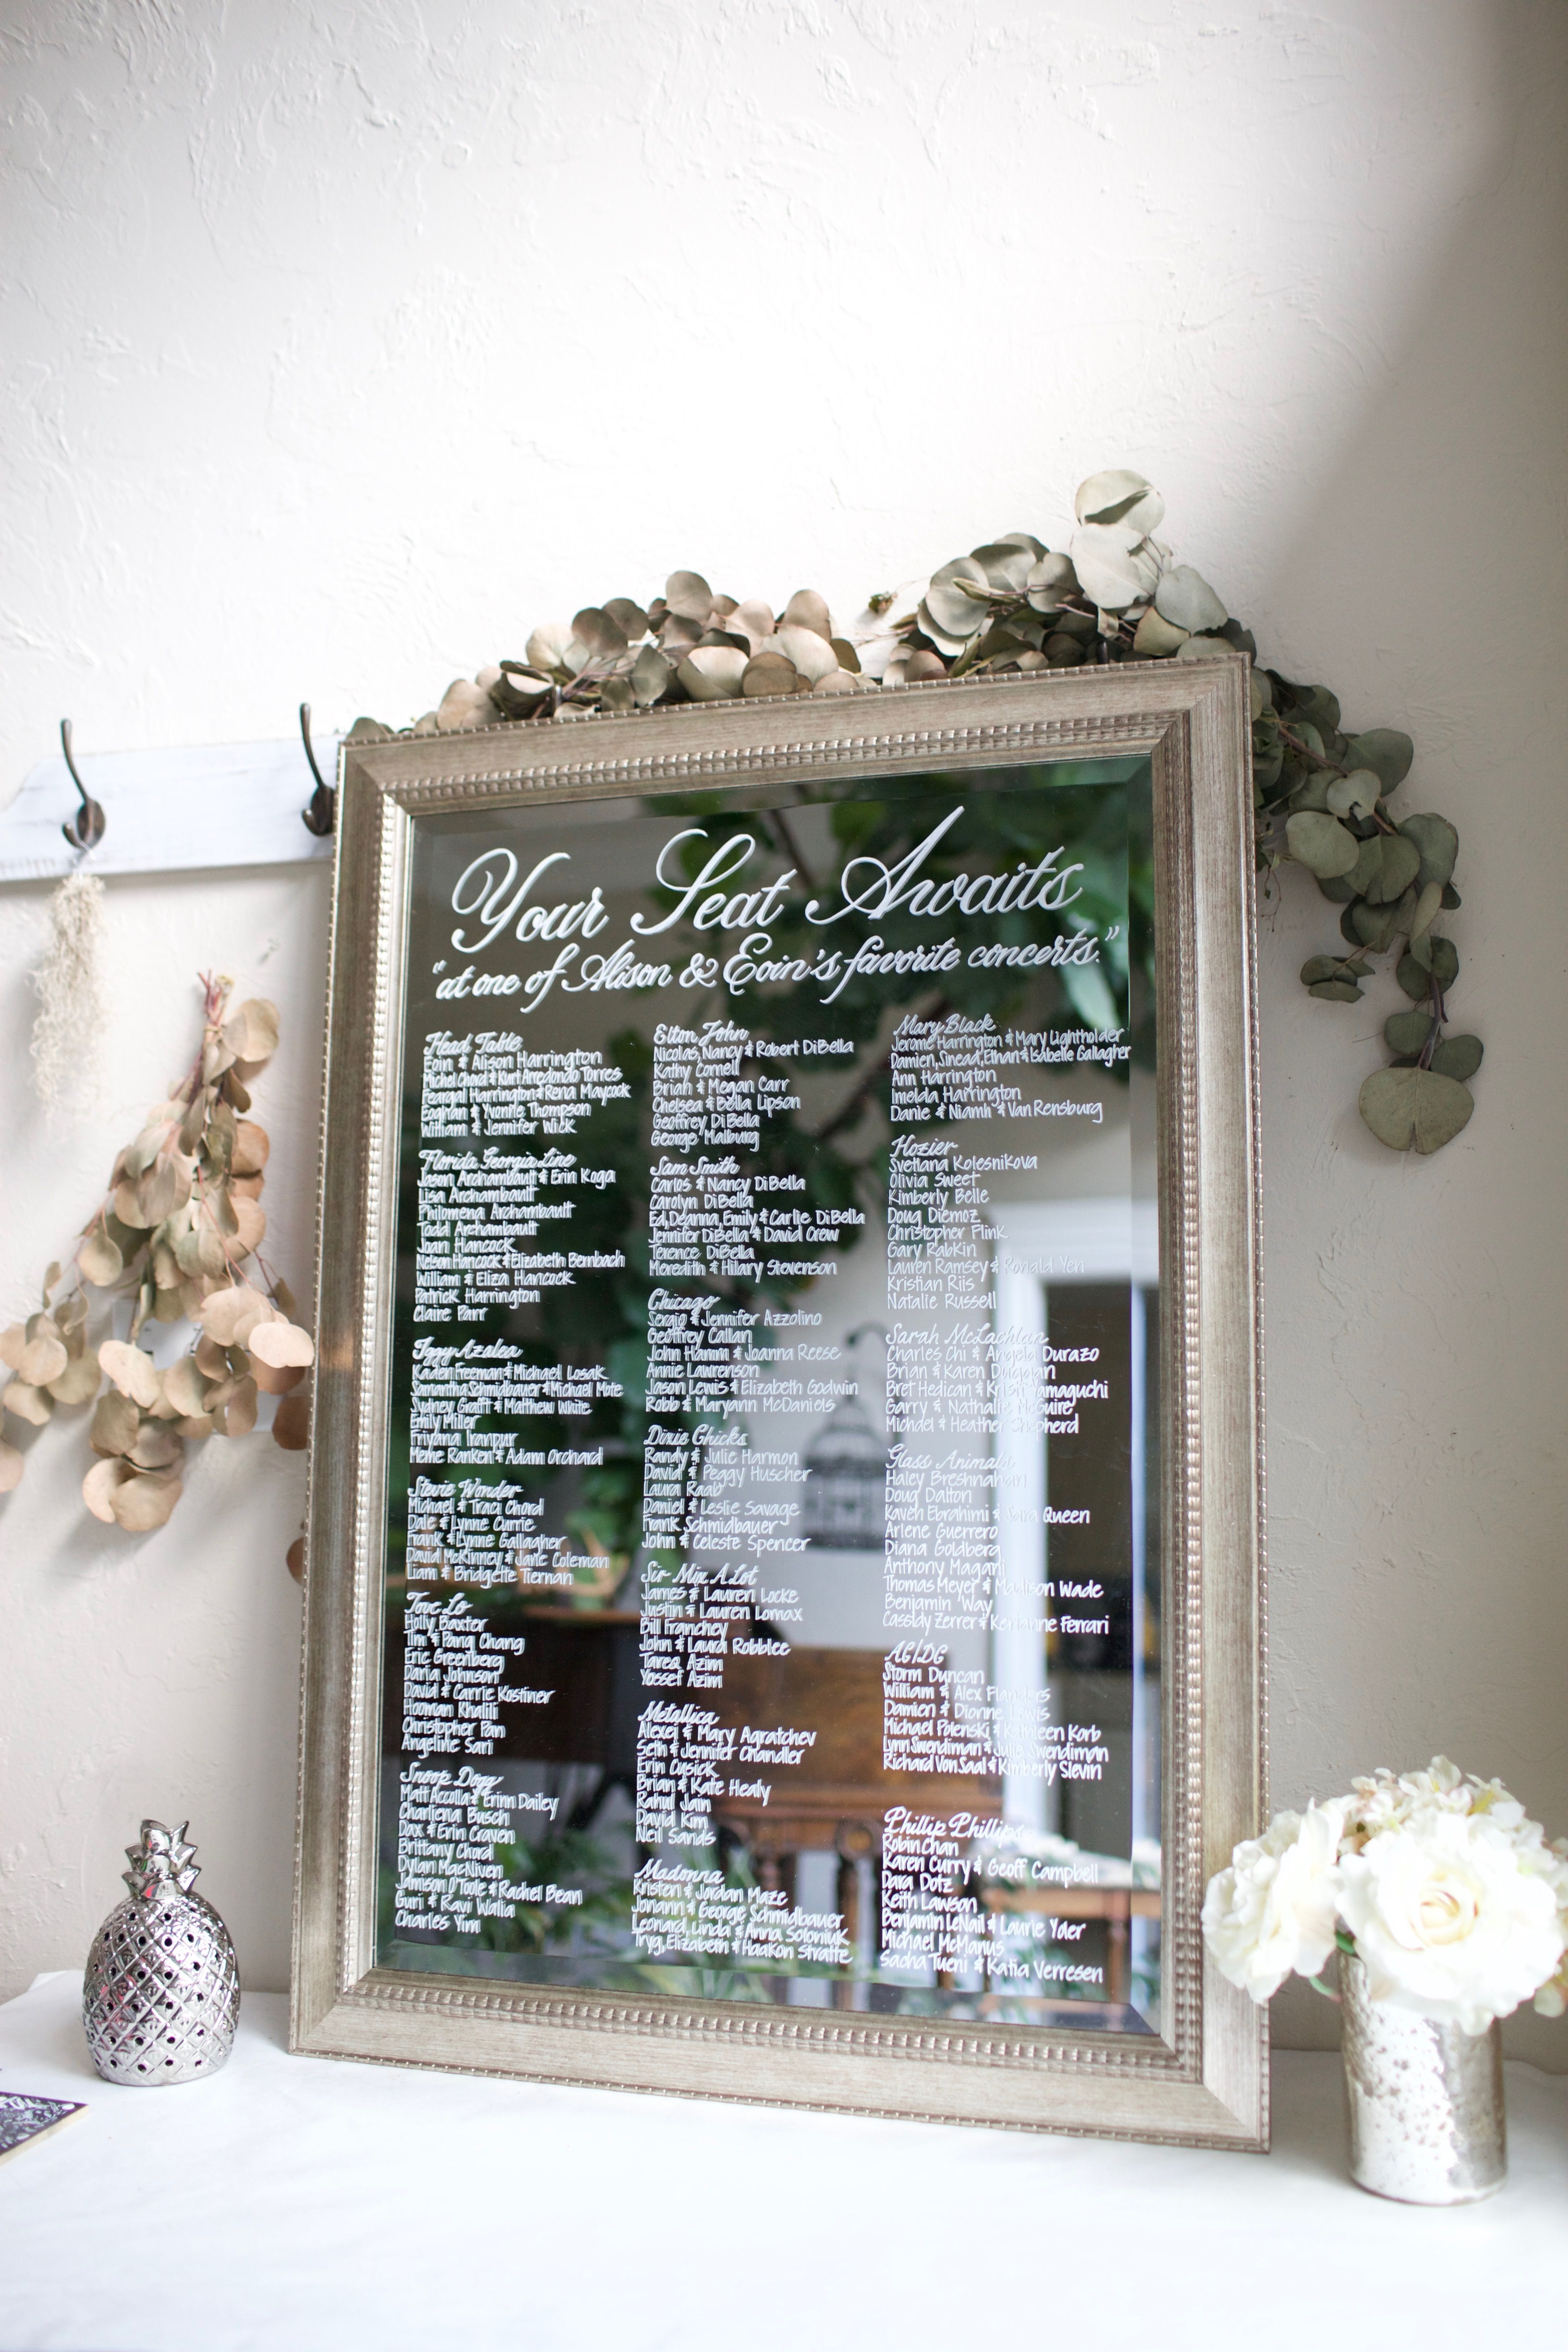 Modern Silver Framed Mirror Escort Sign Hand Painted Personalized Wedding